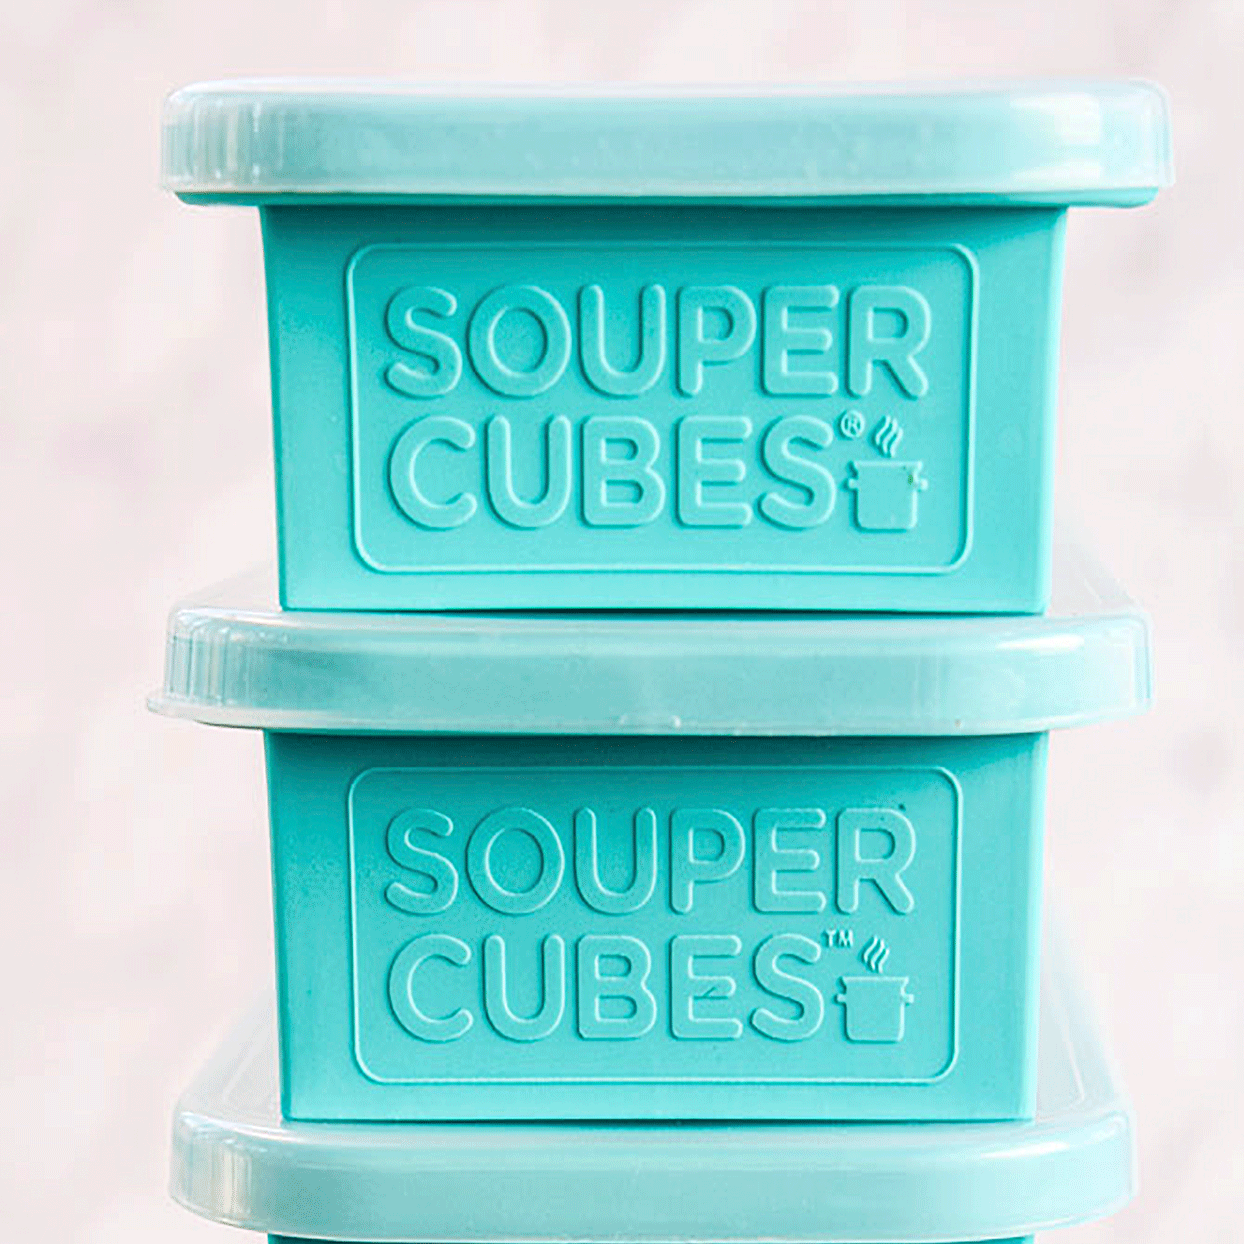 The One Gift Our Test Kitchen Manager Is Buying Everyone: Souper Cubes